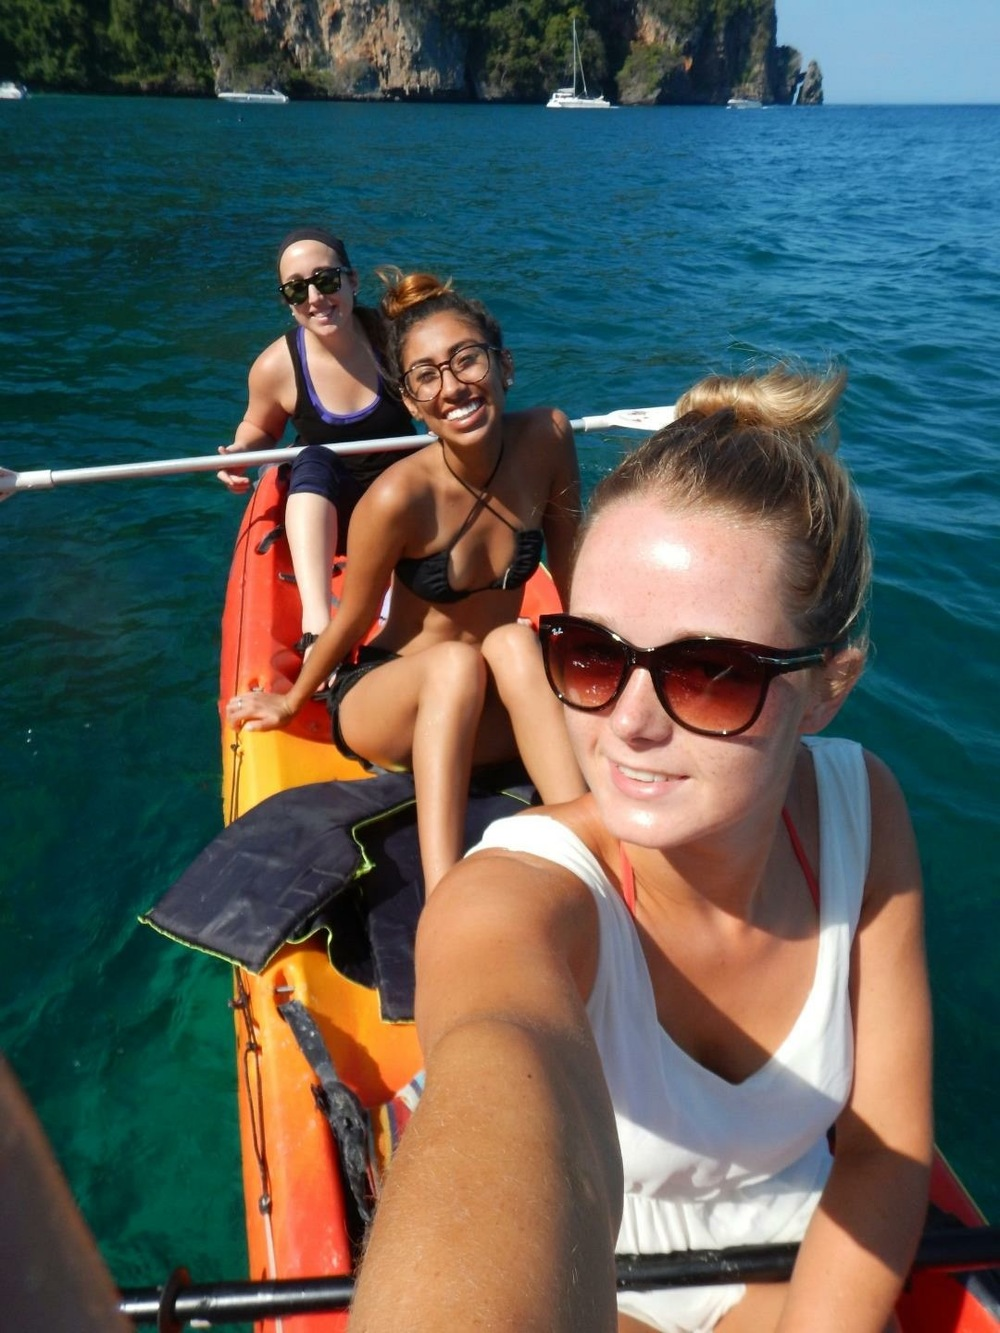 Kayaking with Laura from the Netherlands